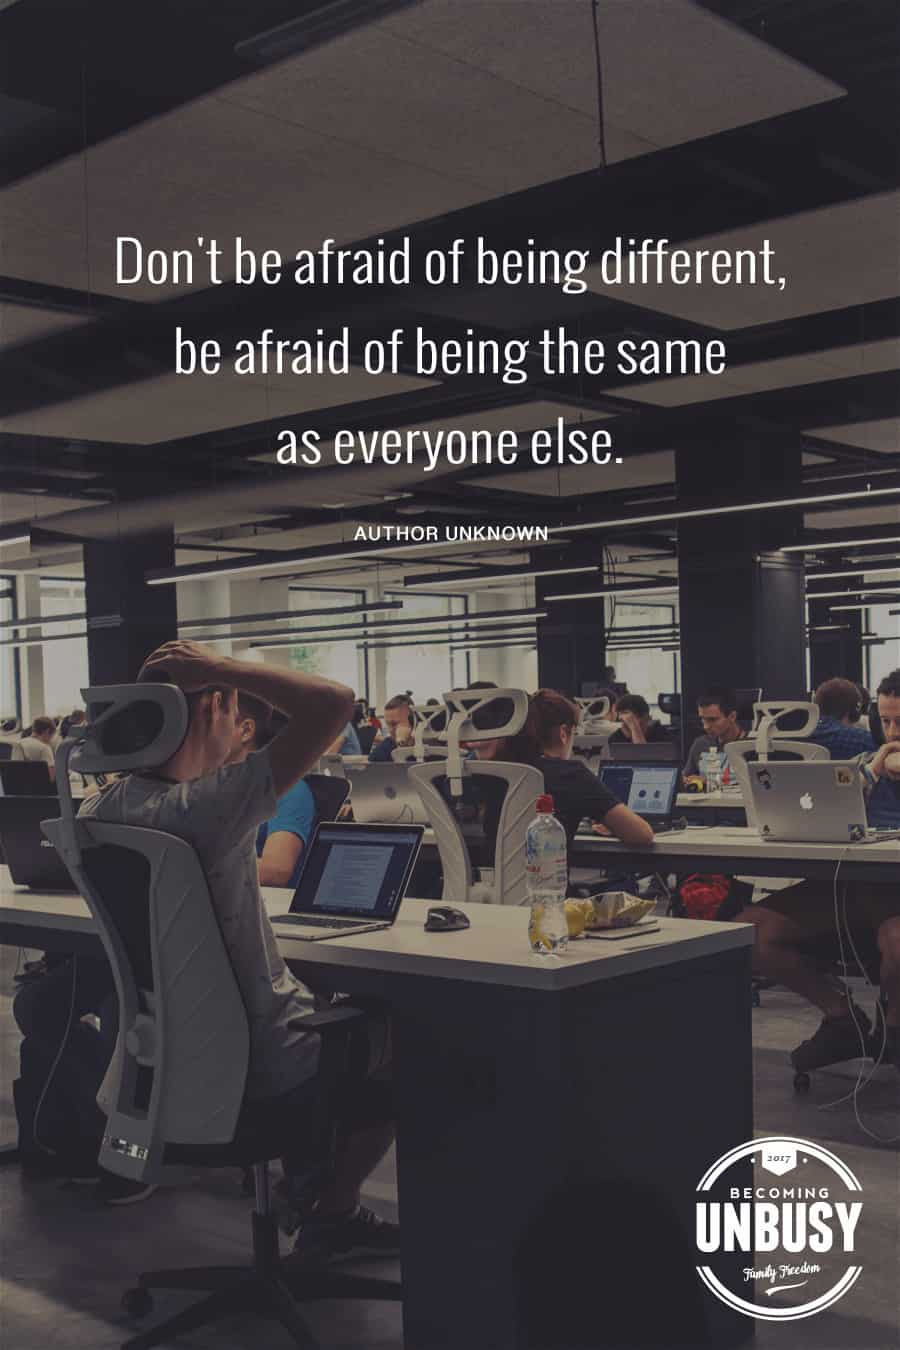 Don't be afraid of being different, be afraid of being the same as everyone else. #BeDifferent #BecomingUnBusy #Quote *Love this video and site!